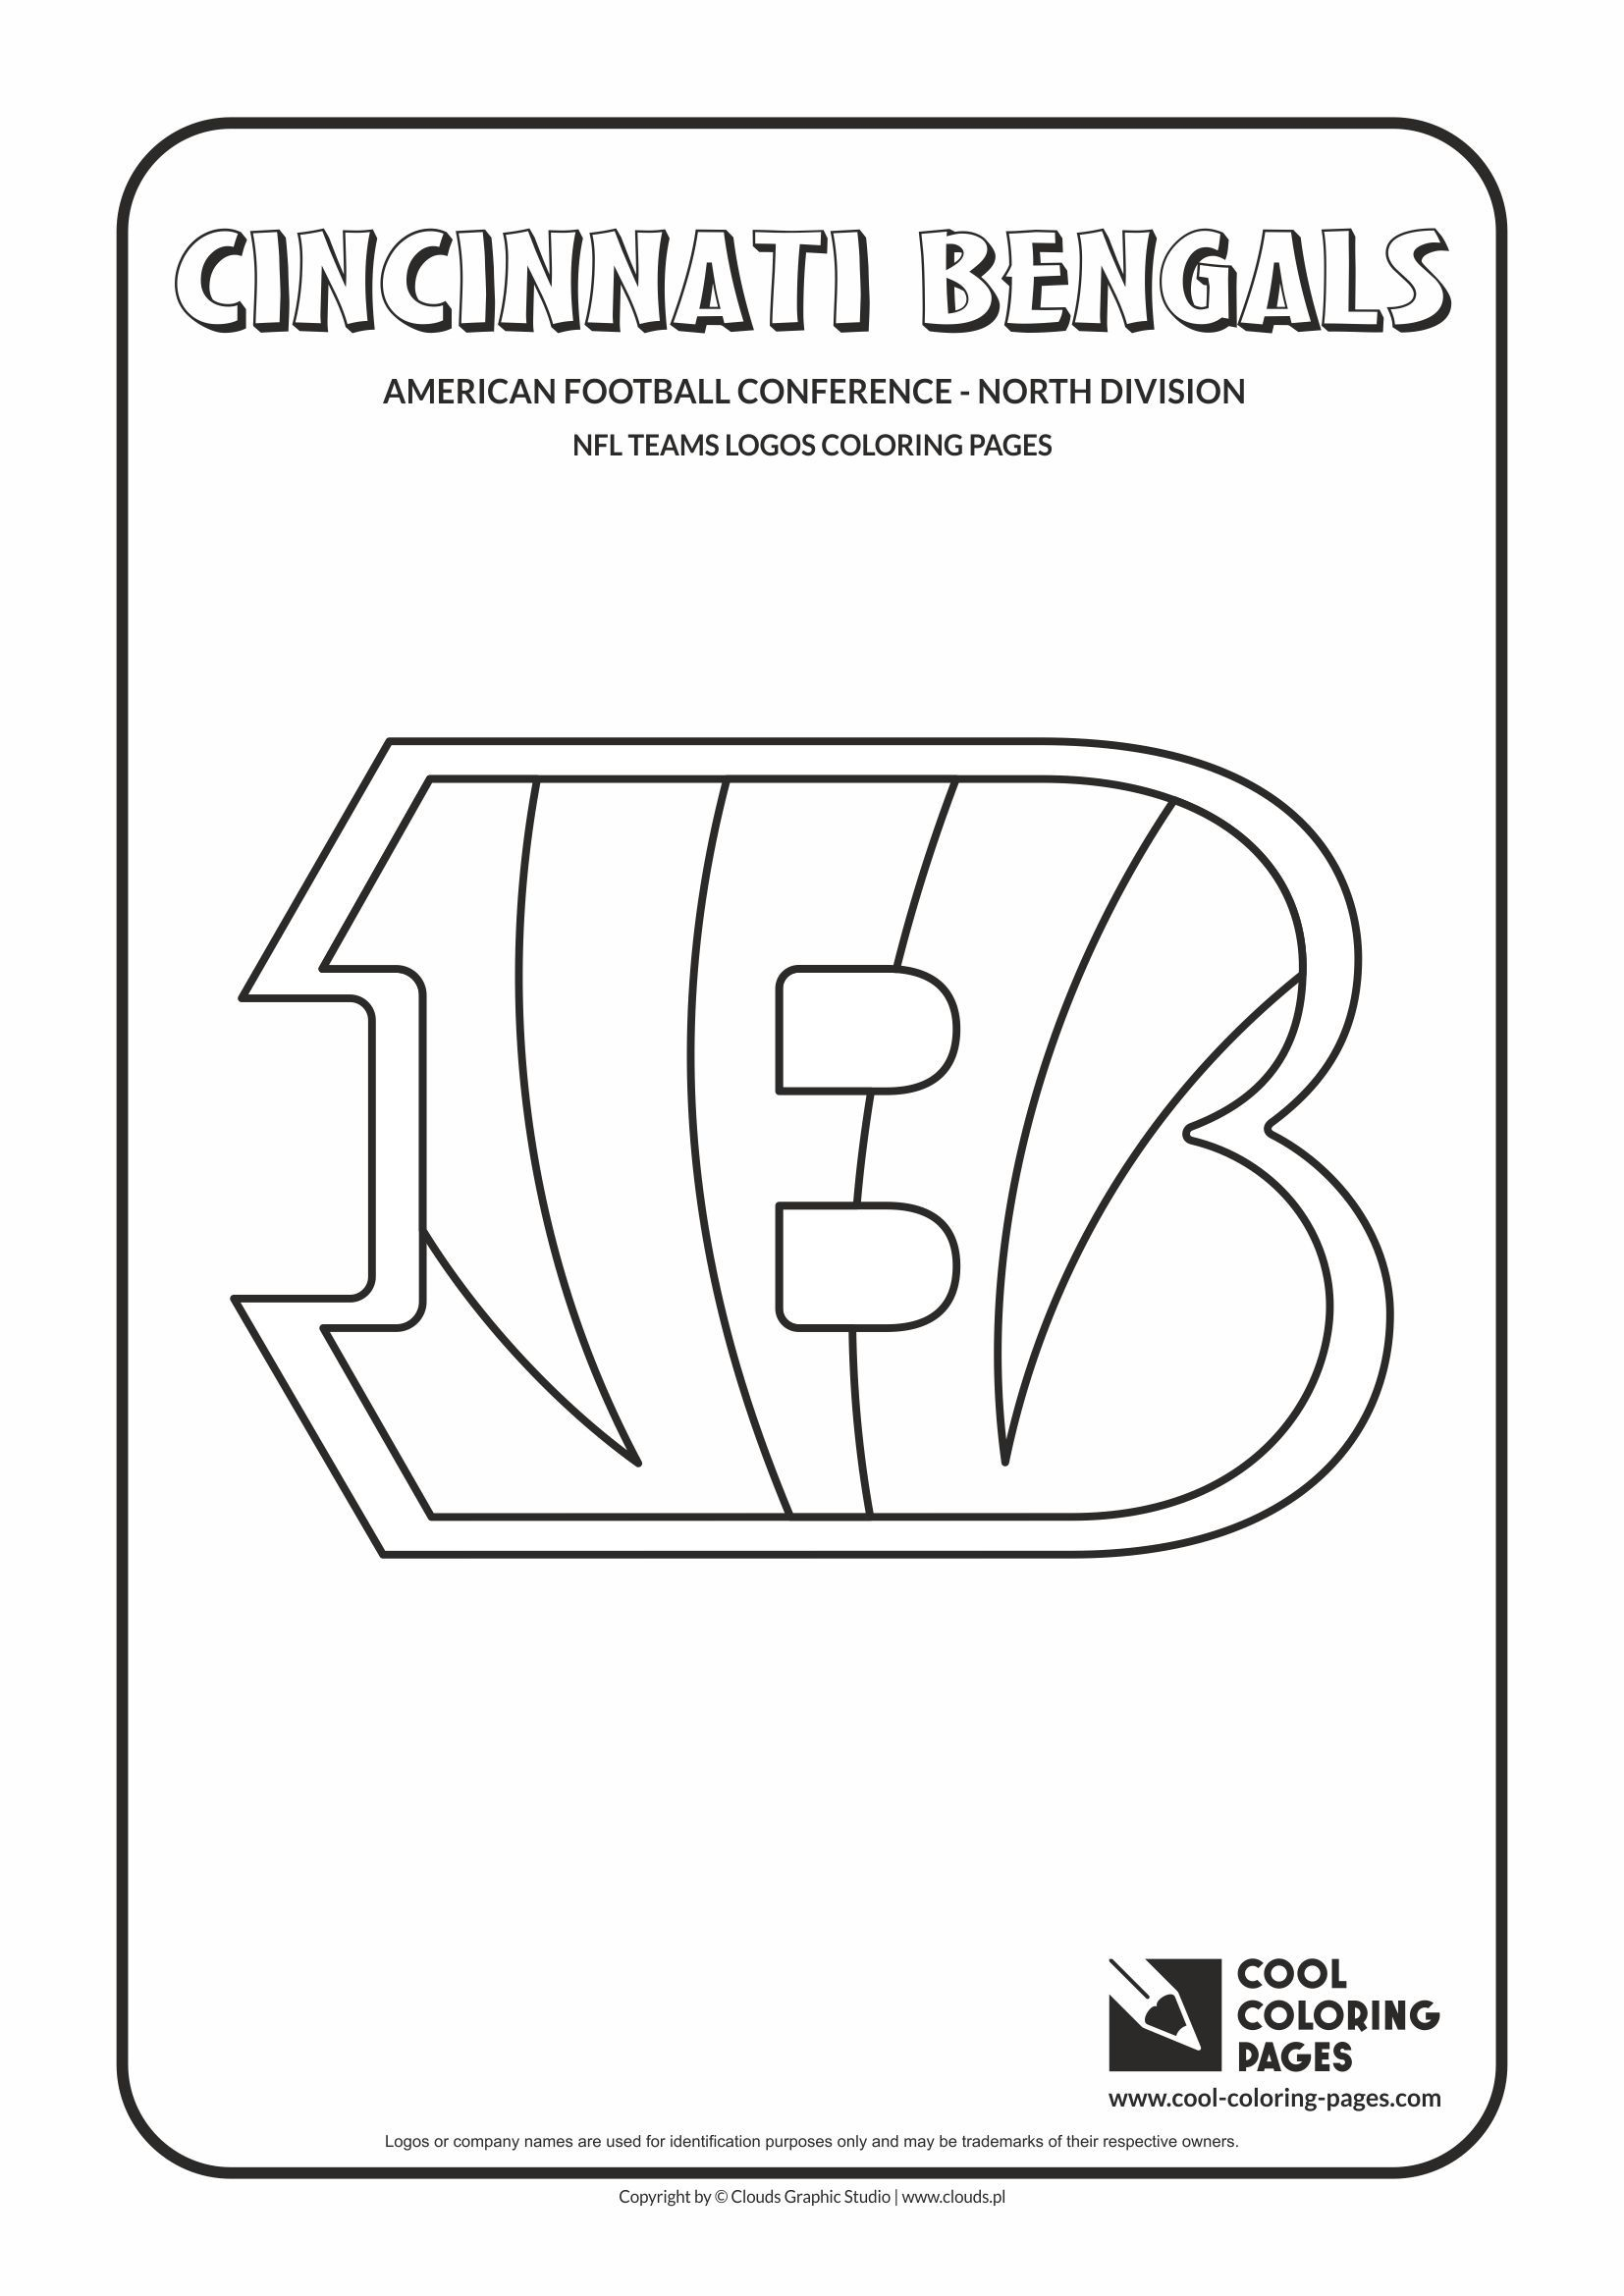 nfl mascot coloring pages Collection-Cool Coloring Pages NFL American Football Clubs Logos American Football… 6-e